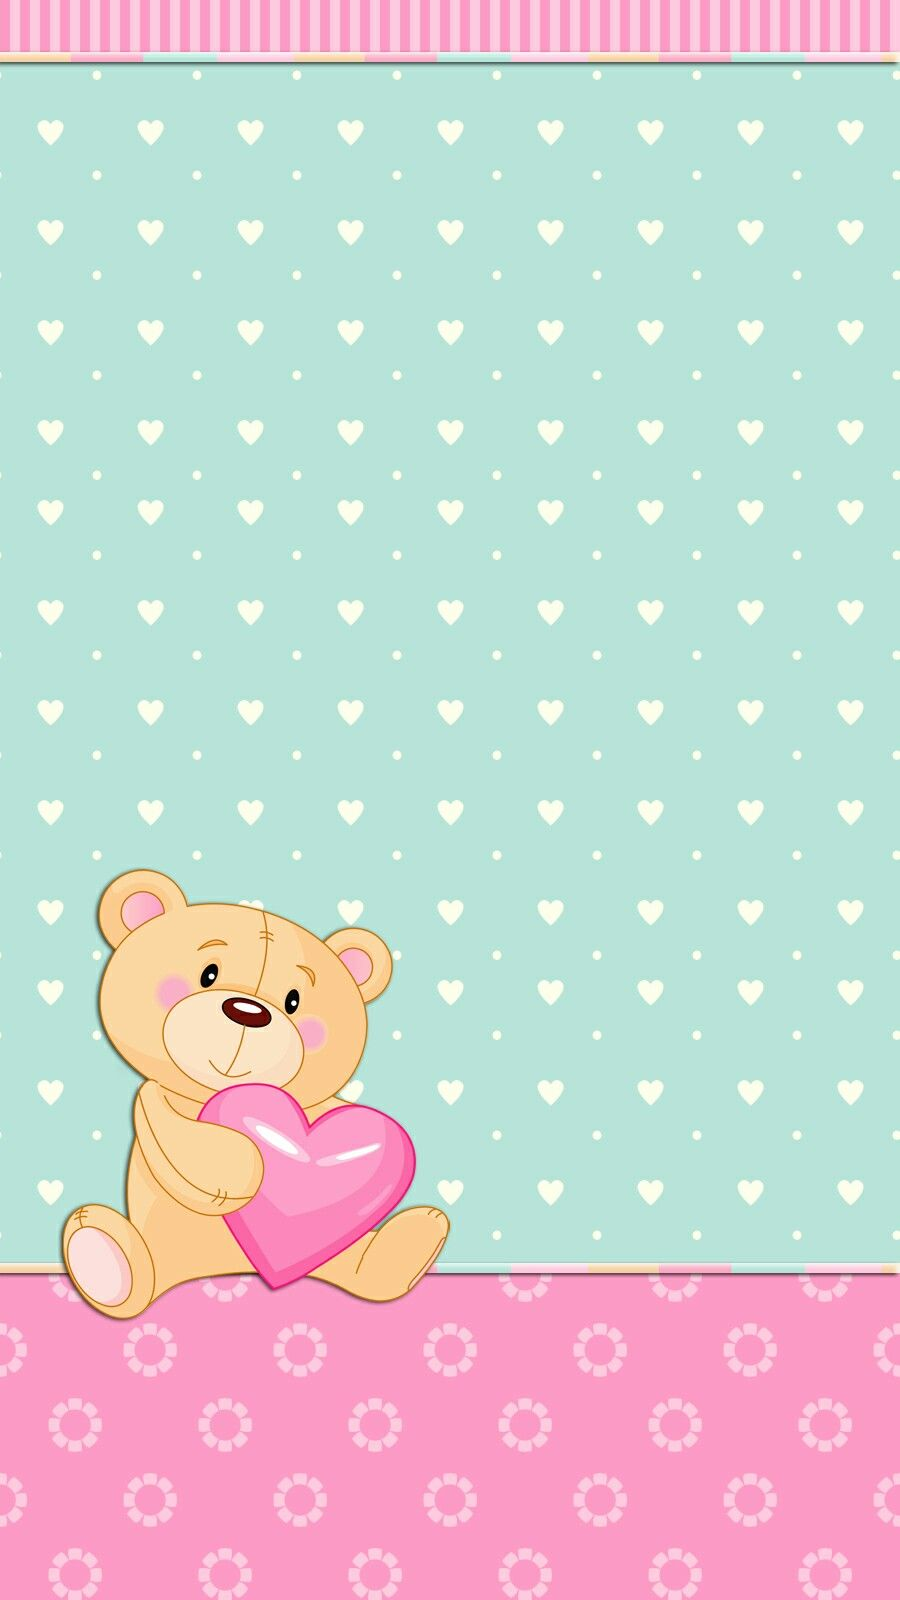 Simple Wallpaper Mobile Hello Kitty - 92fb90d49492413236c9d4040c0d14f5  Gallery_807753.jpg